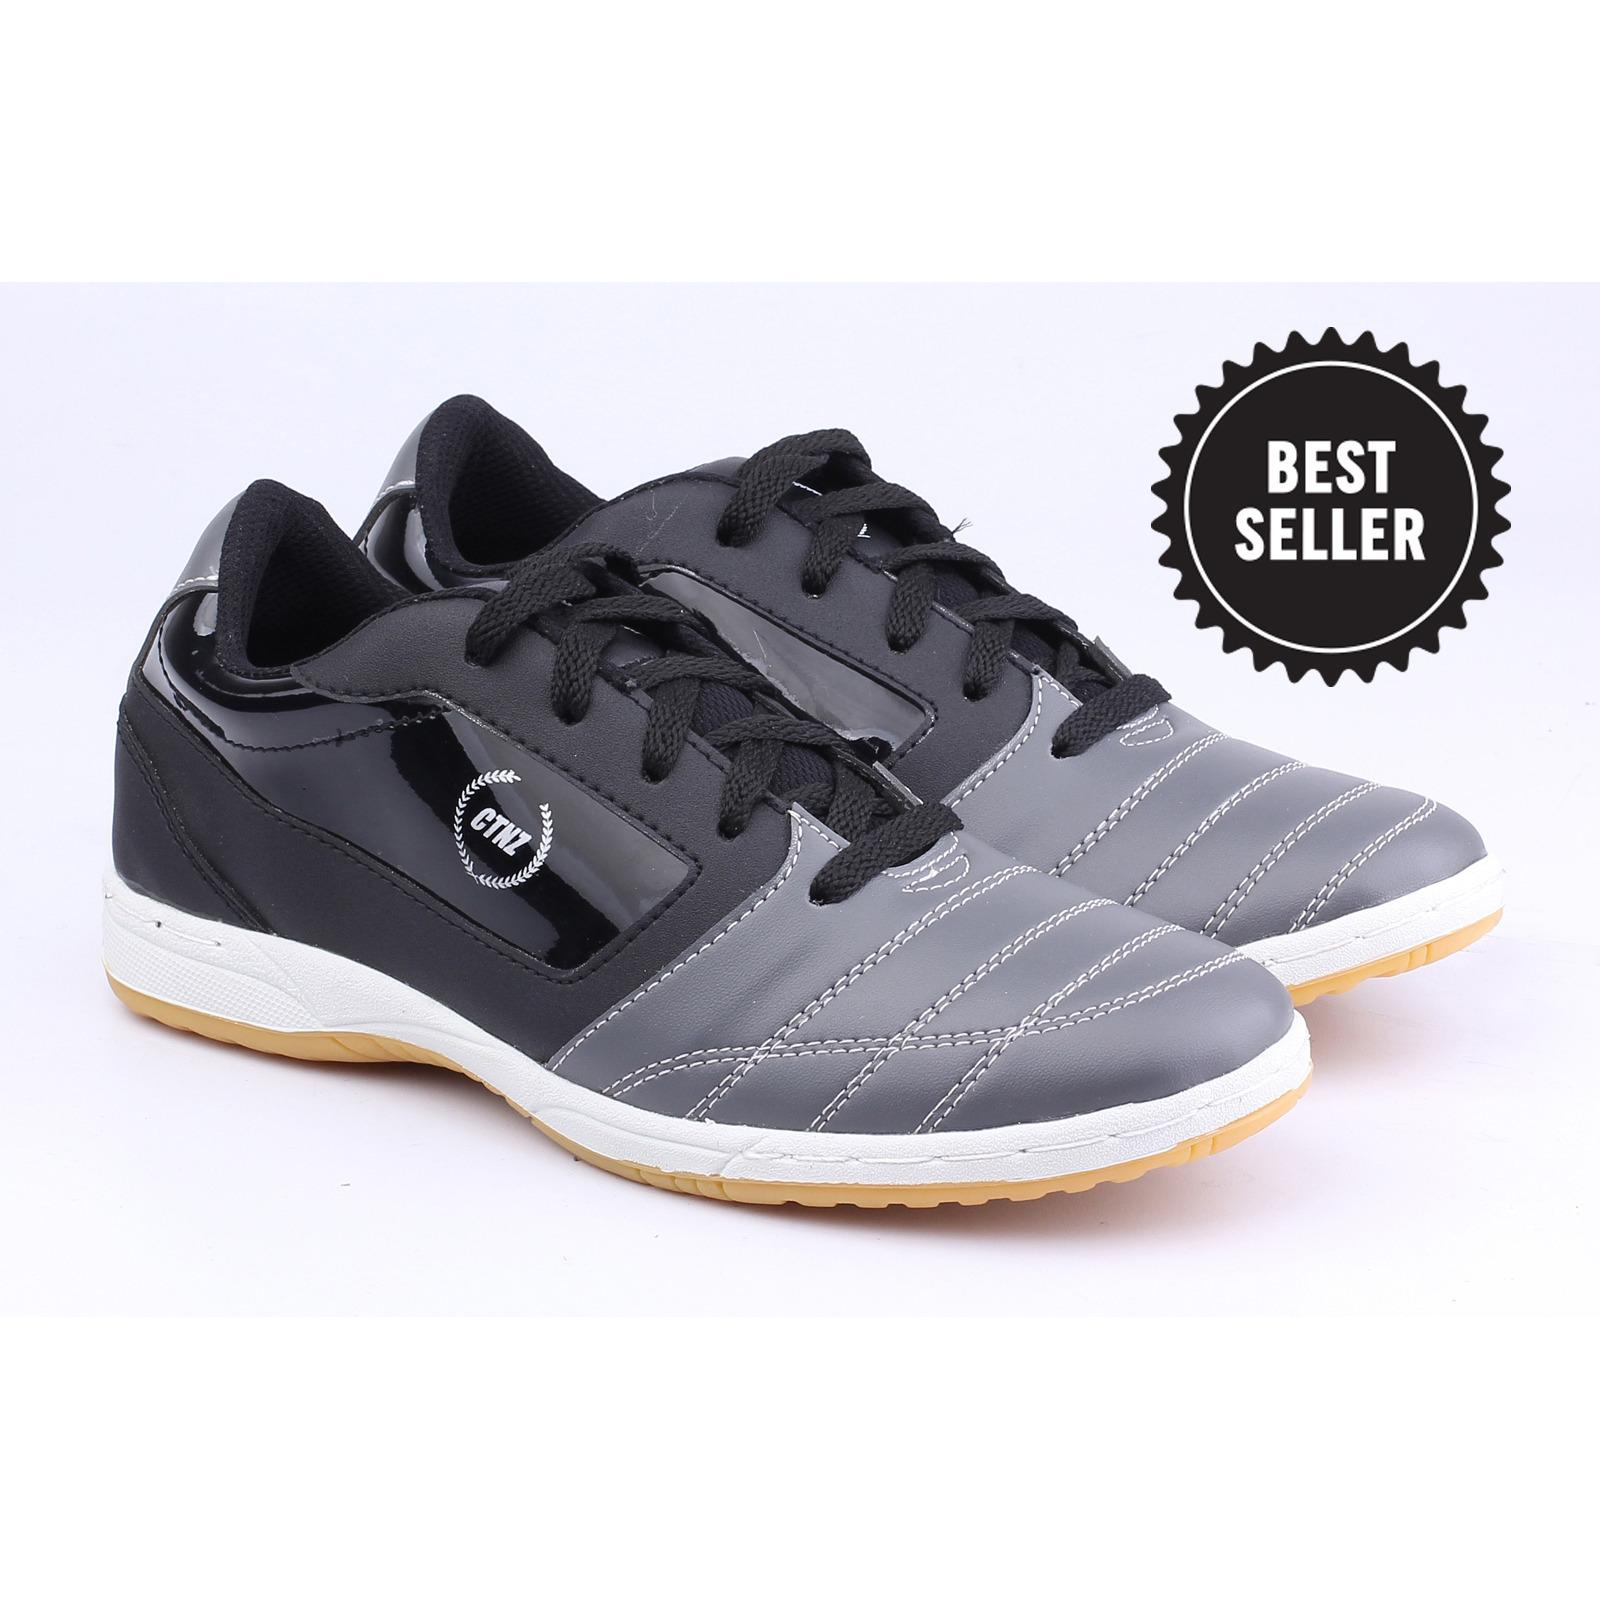 Catenzo Sepatu Futsal Sintetis Original - Men Shoes d5126acd37